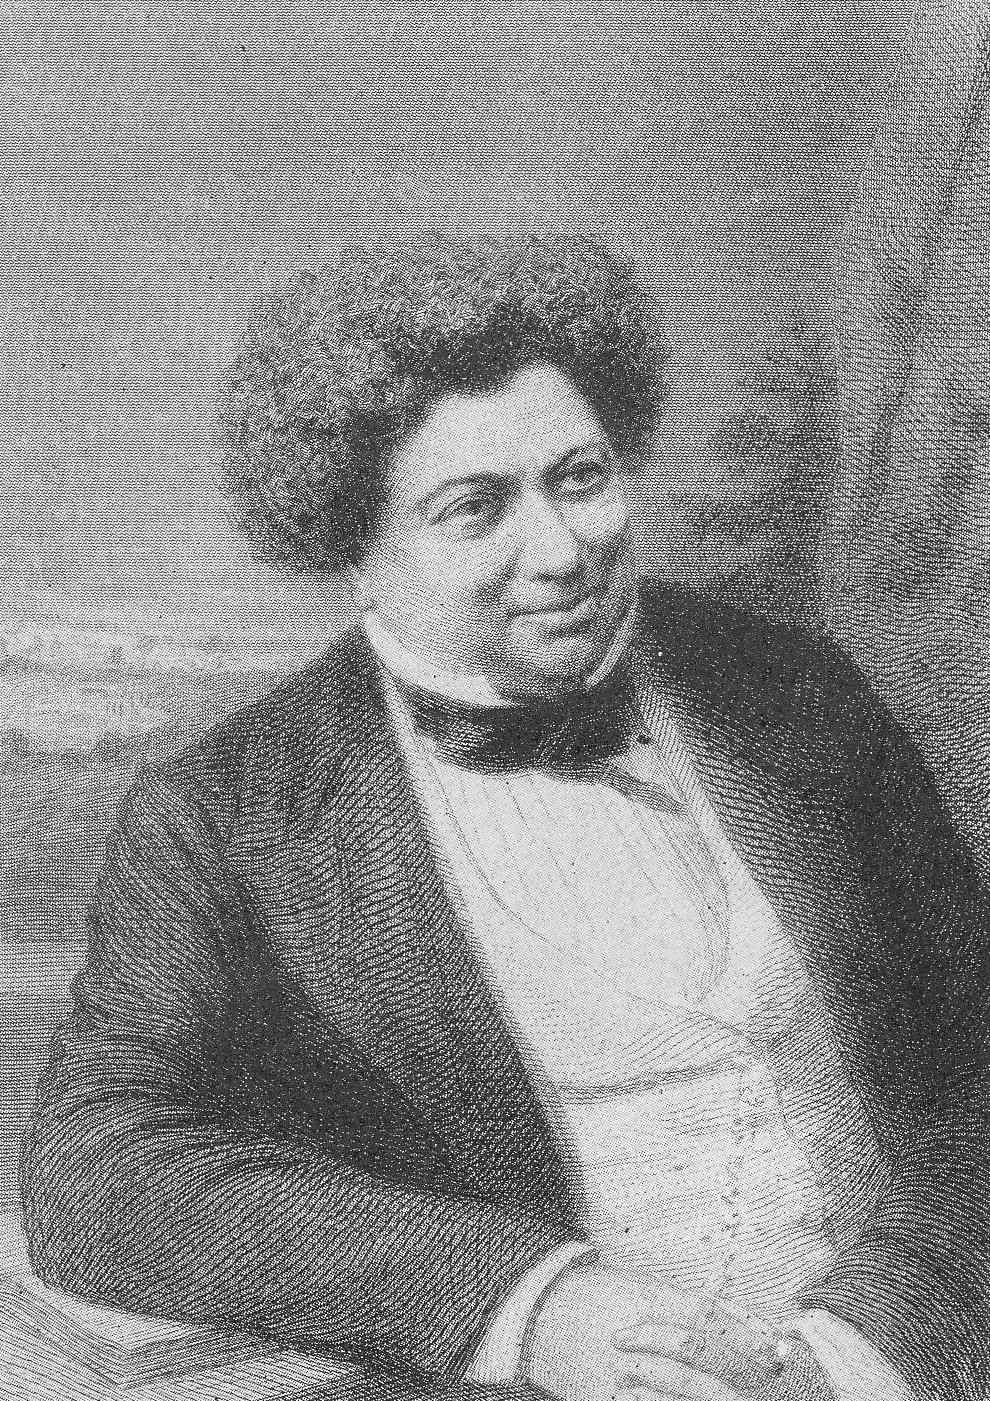 http://upload.wikimedia.org/wikipedia/commons/b/b5/Alexandre_Dumas_10.jpg